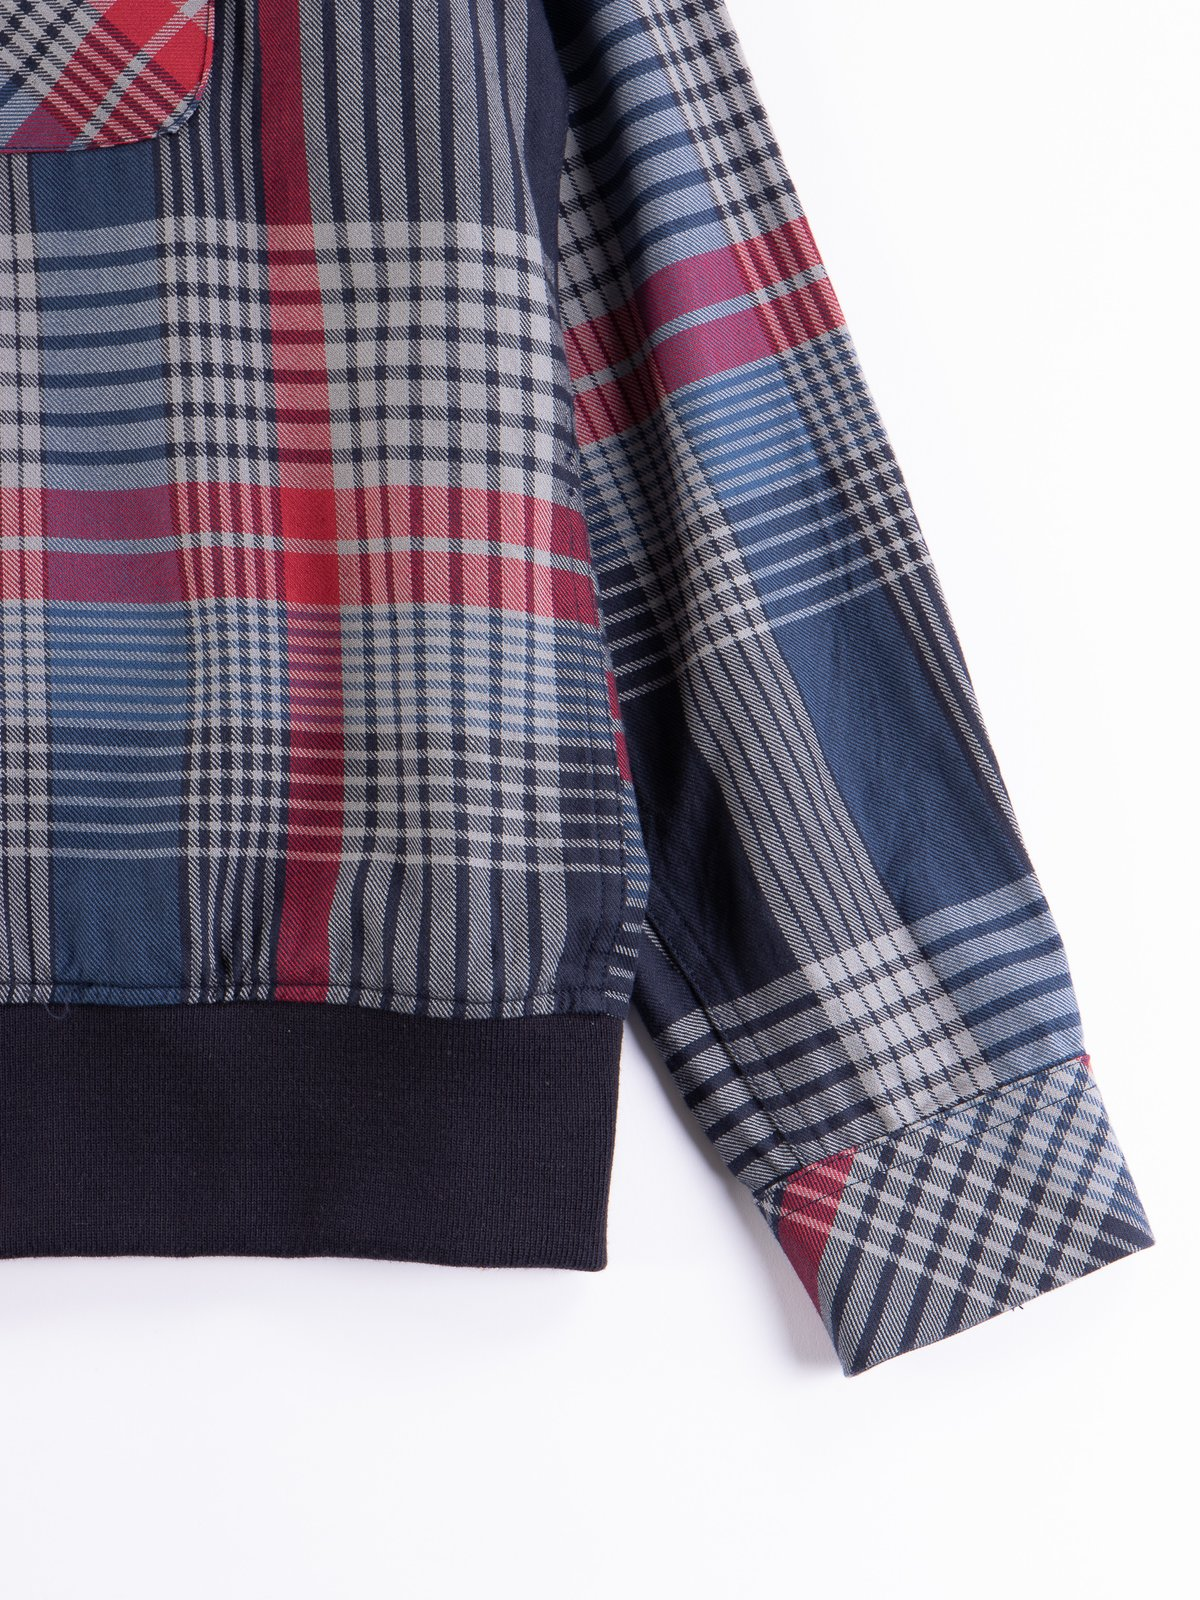 Navy/Grey/Red Cotton Twill Classic Shirt - Image 4